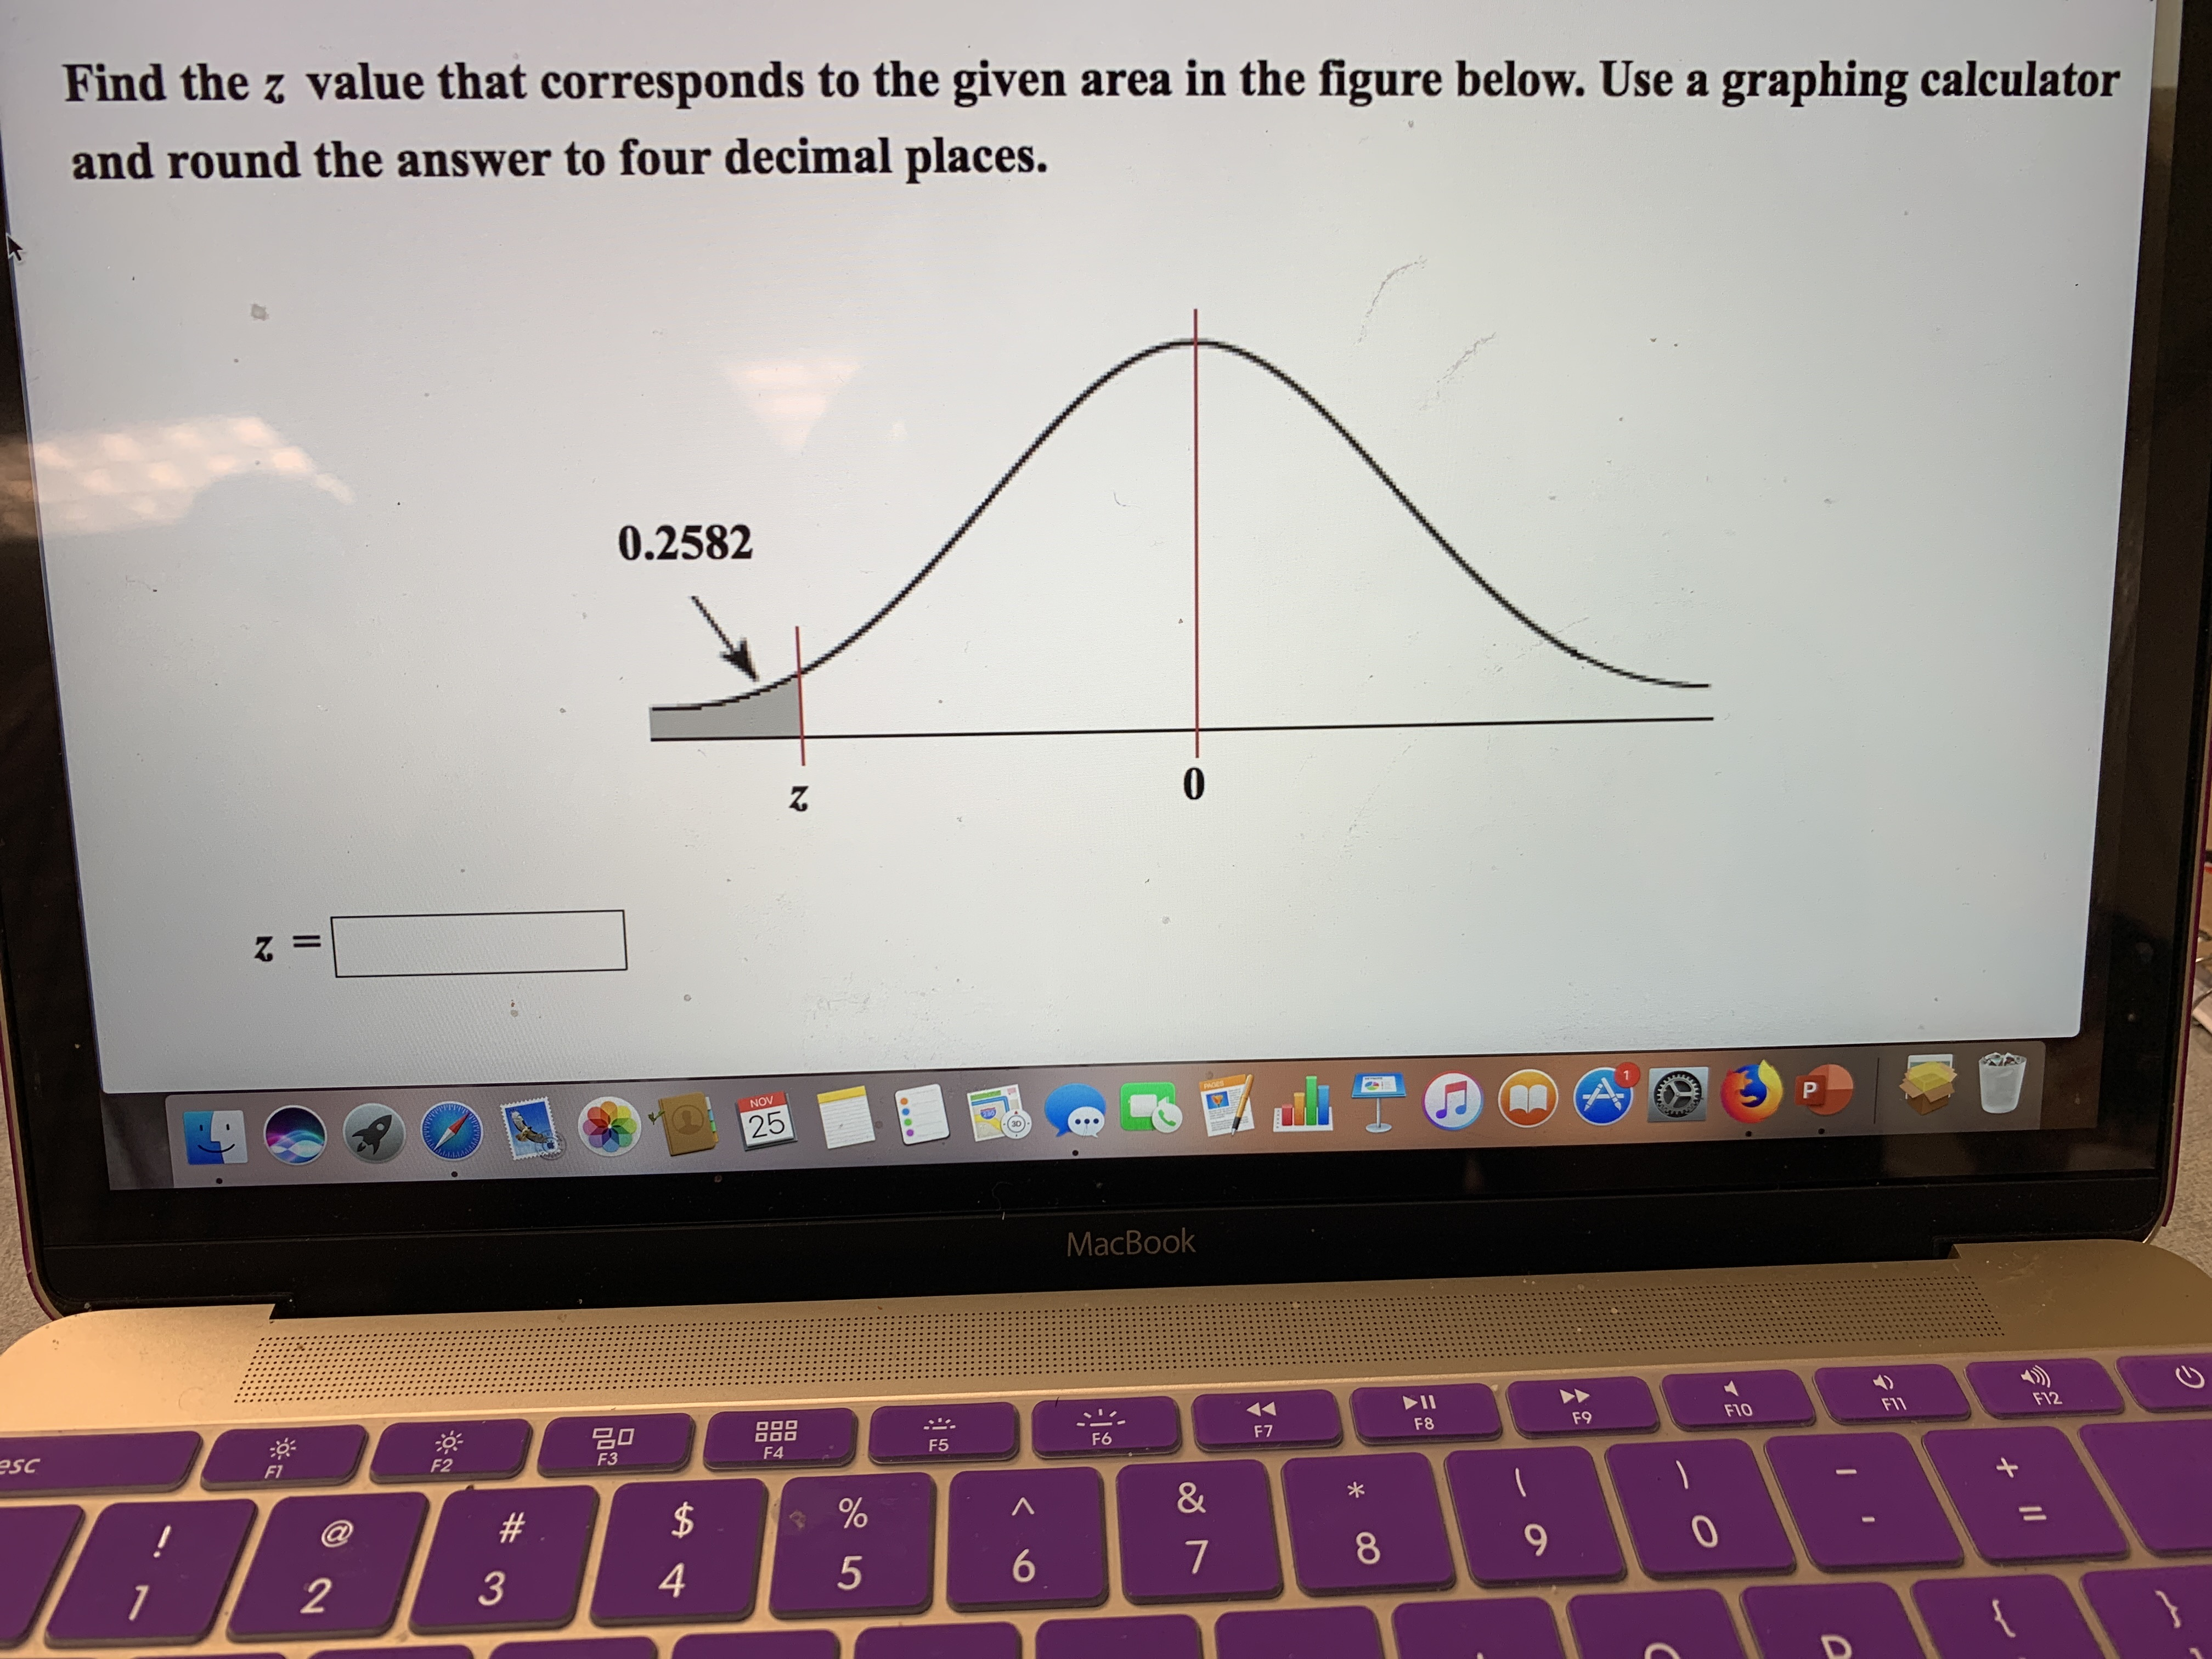 Find the z value that corresponds to the given area in the figure below. Use a graphing calculator and round the answer to four decimal places. 0.2582 0 A PACES NOV P 25 MacBook 딤미 F12 F1 FIO F9 F8 esc F7 F6 F5 F4 F3 F2 F1 & $ # @ ! 7 4 3 2 II